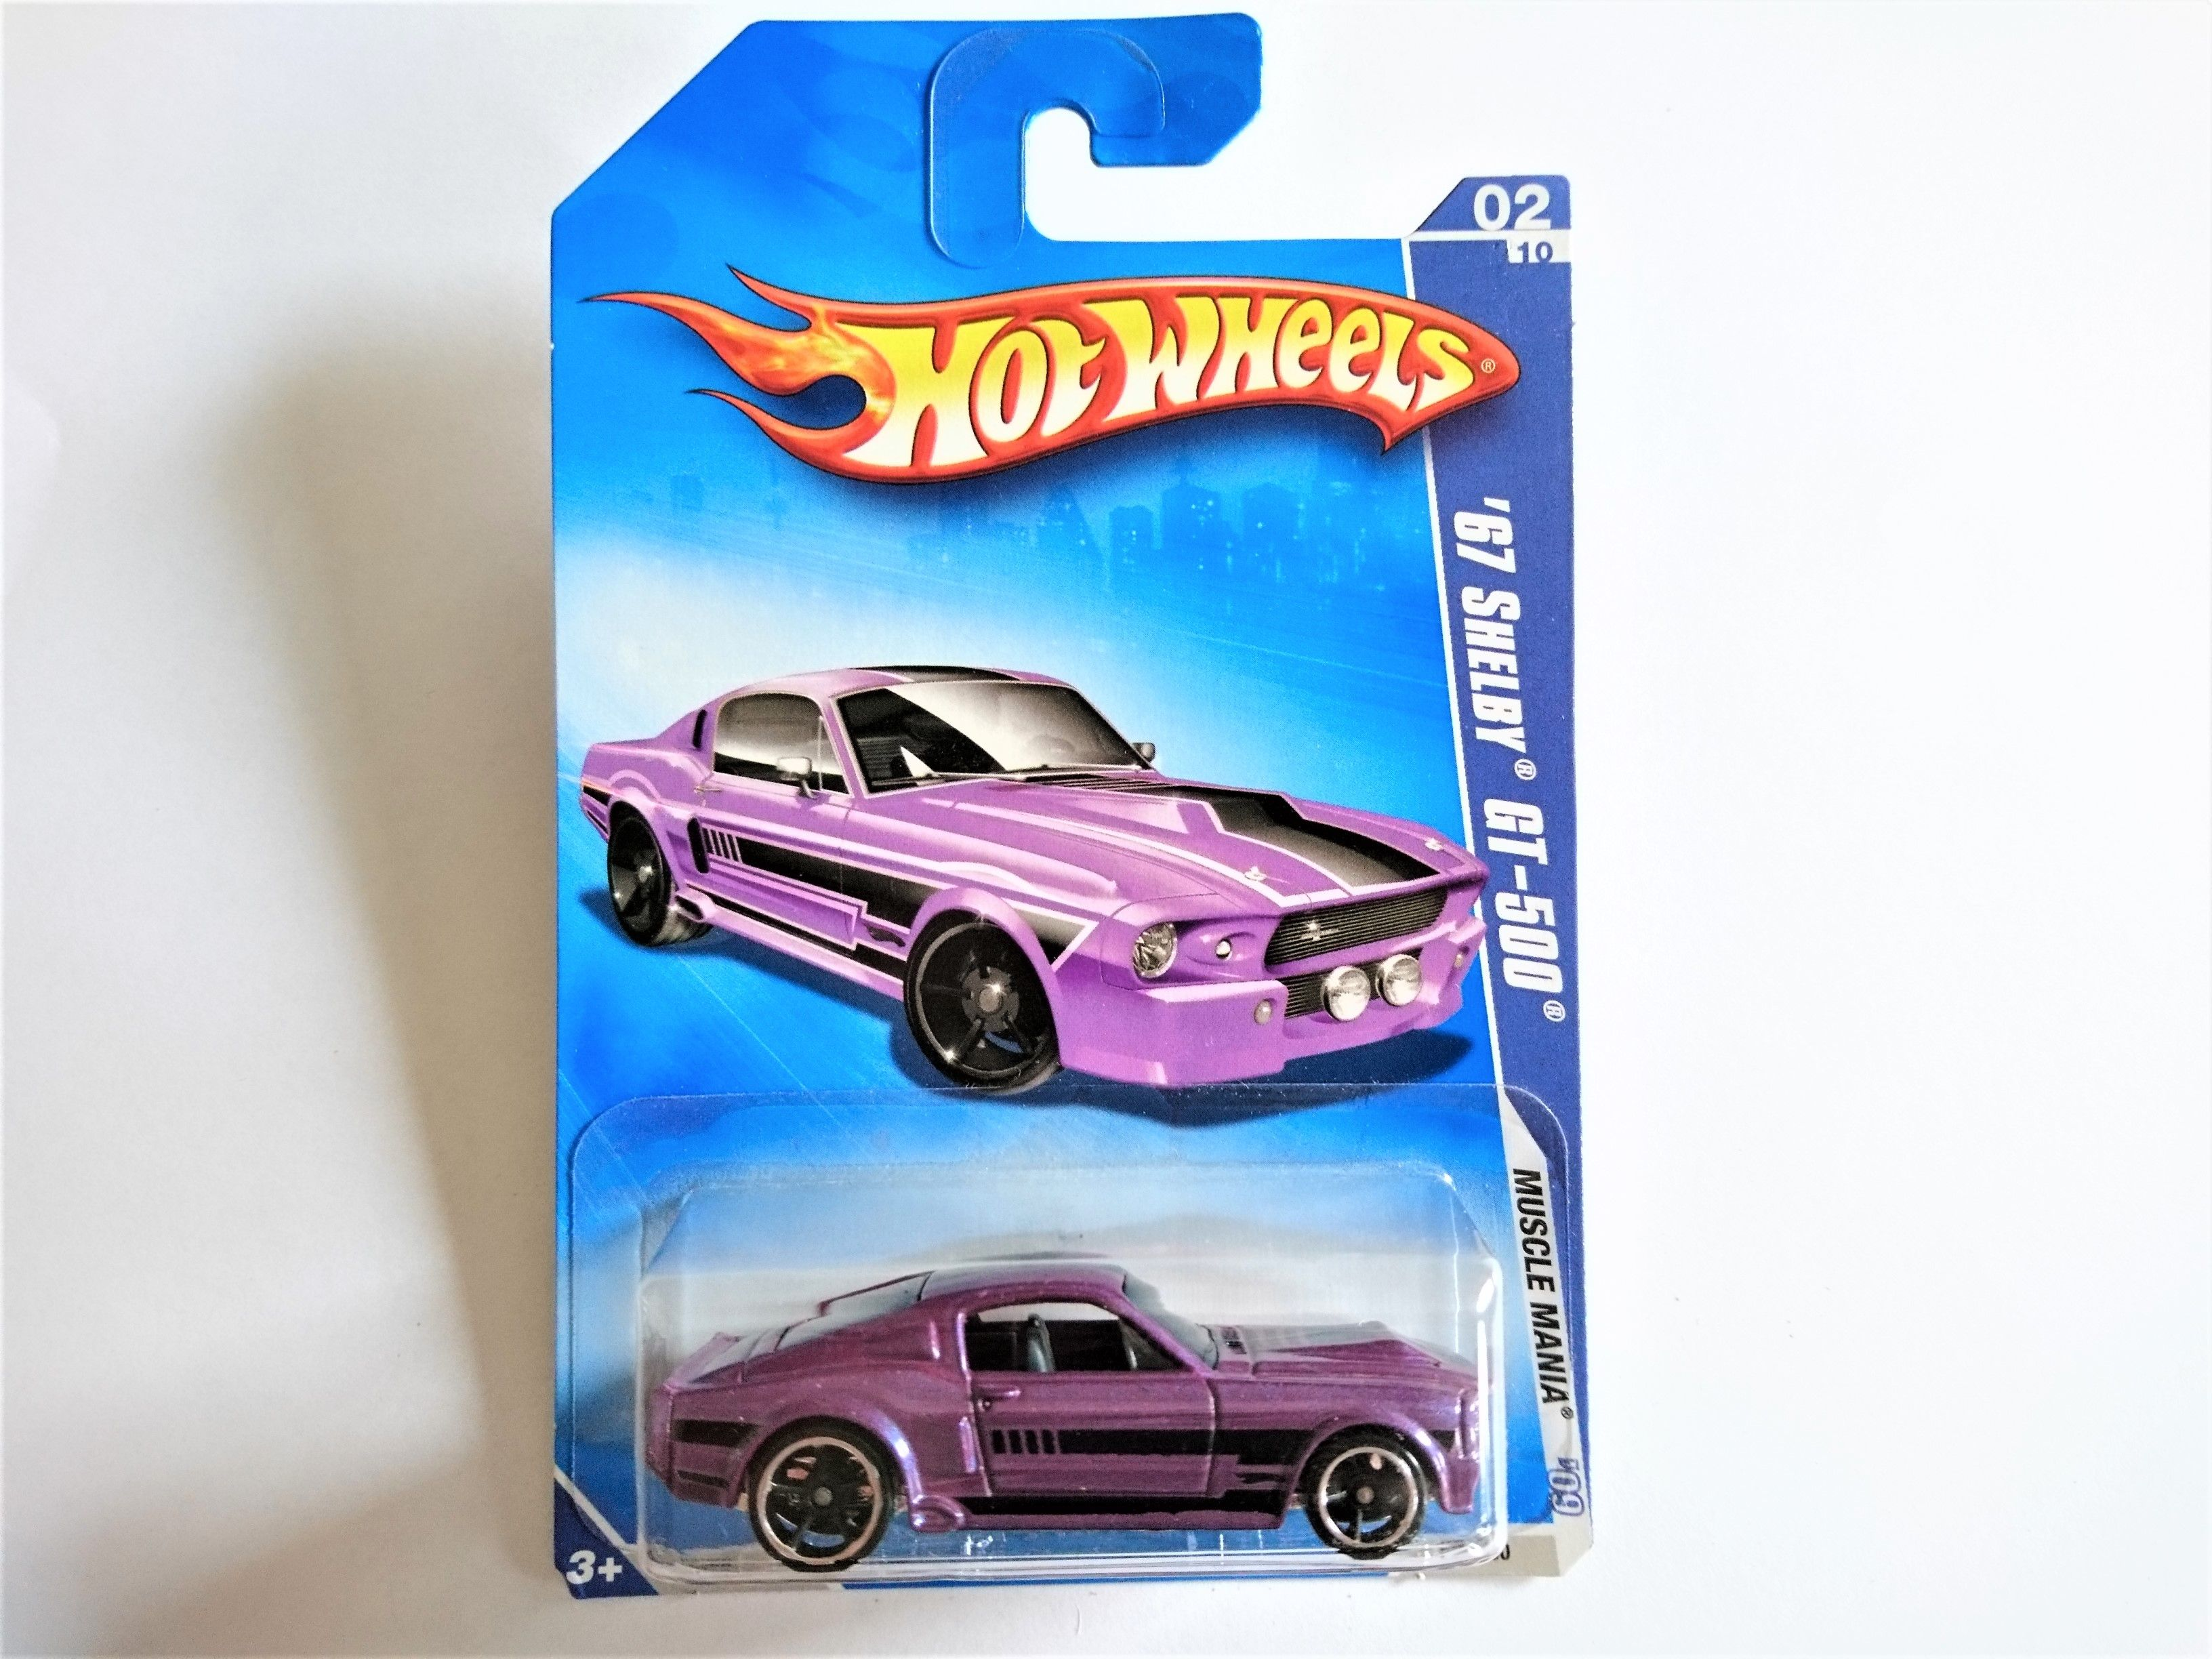 2009 Ford Mustang 1967 Shelby Gt500 Eleanor Hot Wheels Hot Wheels 2009 Ford Mustang Cuda